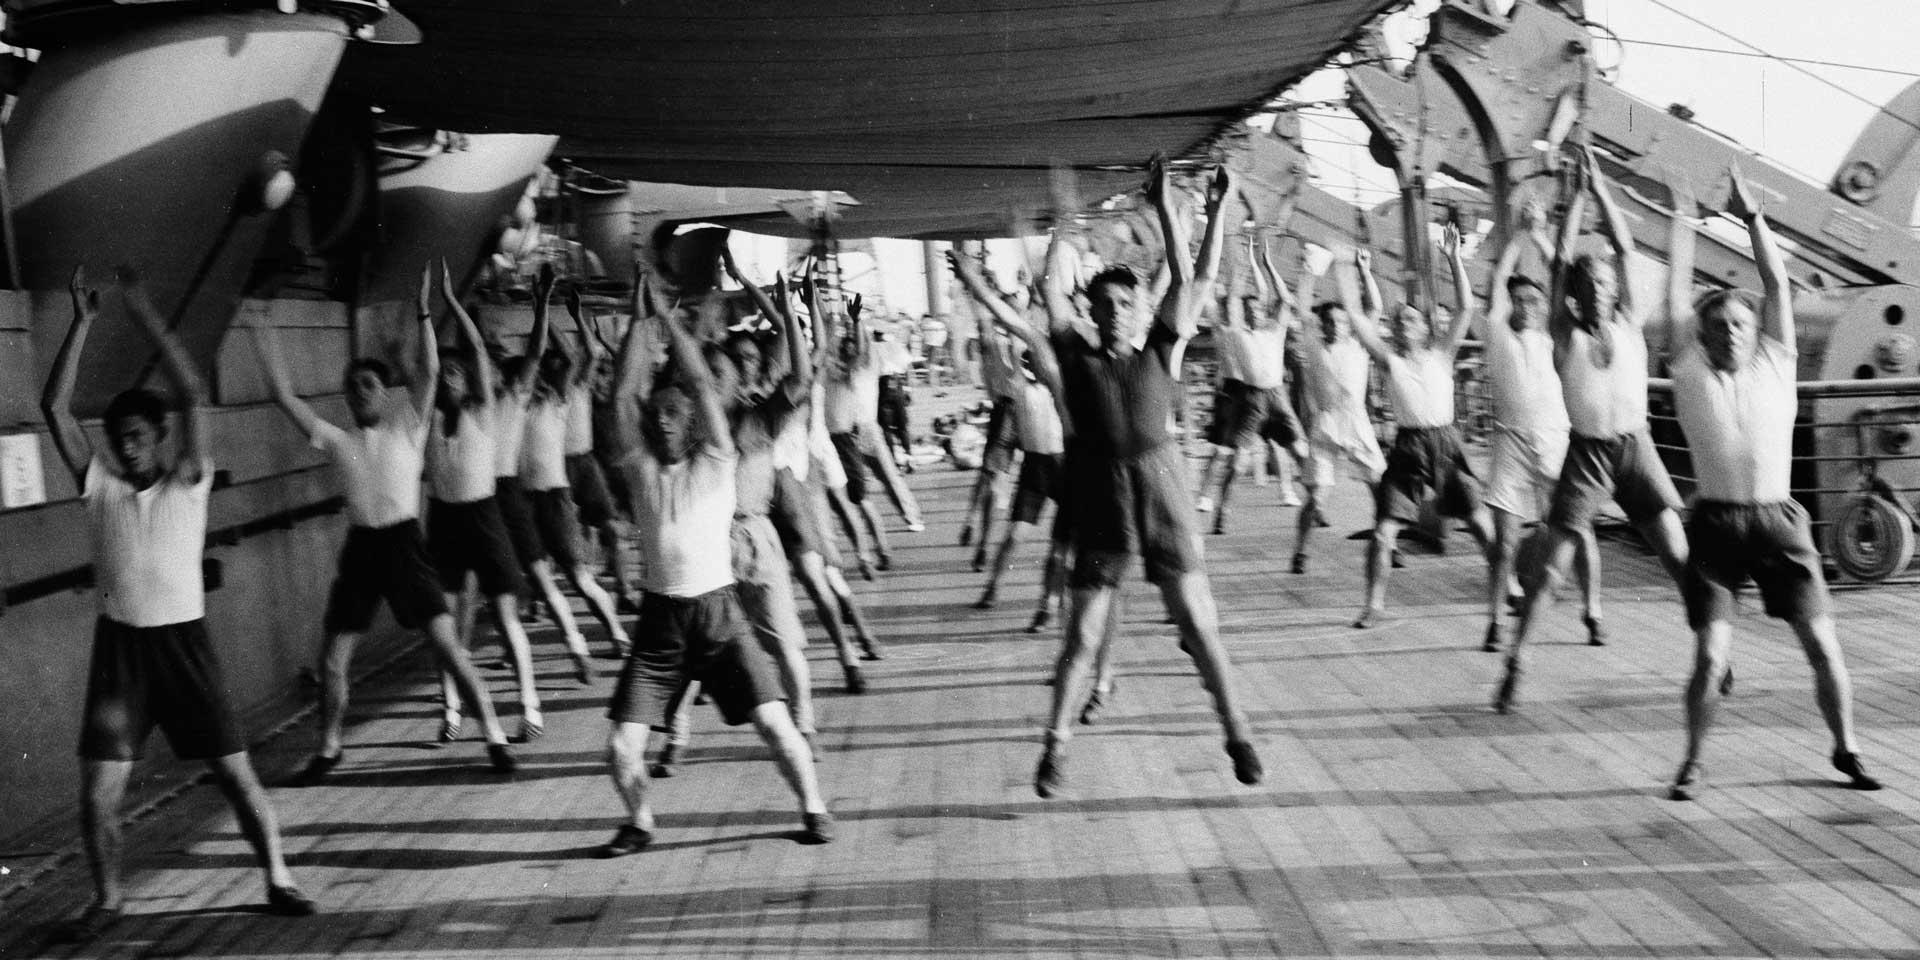 3rd County of London Yeomanry (Sharpshooters) keeping fit on board HMT 'Orion' en route to Egypt, 1941